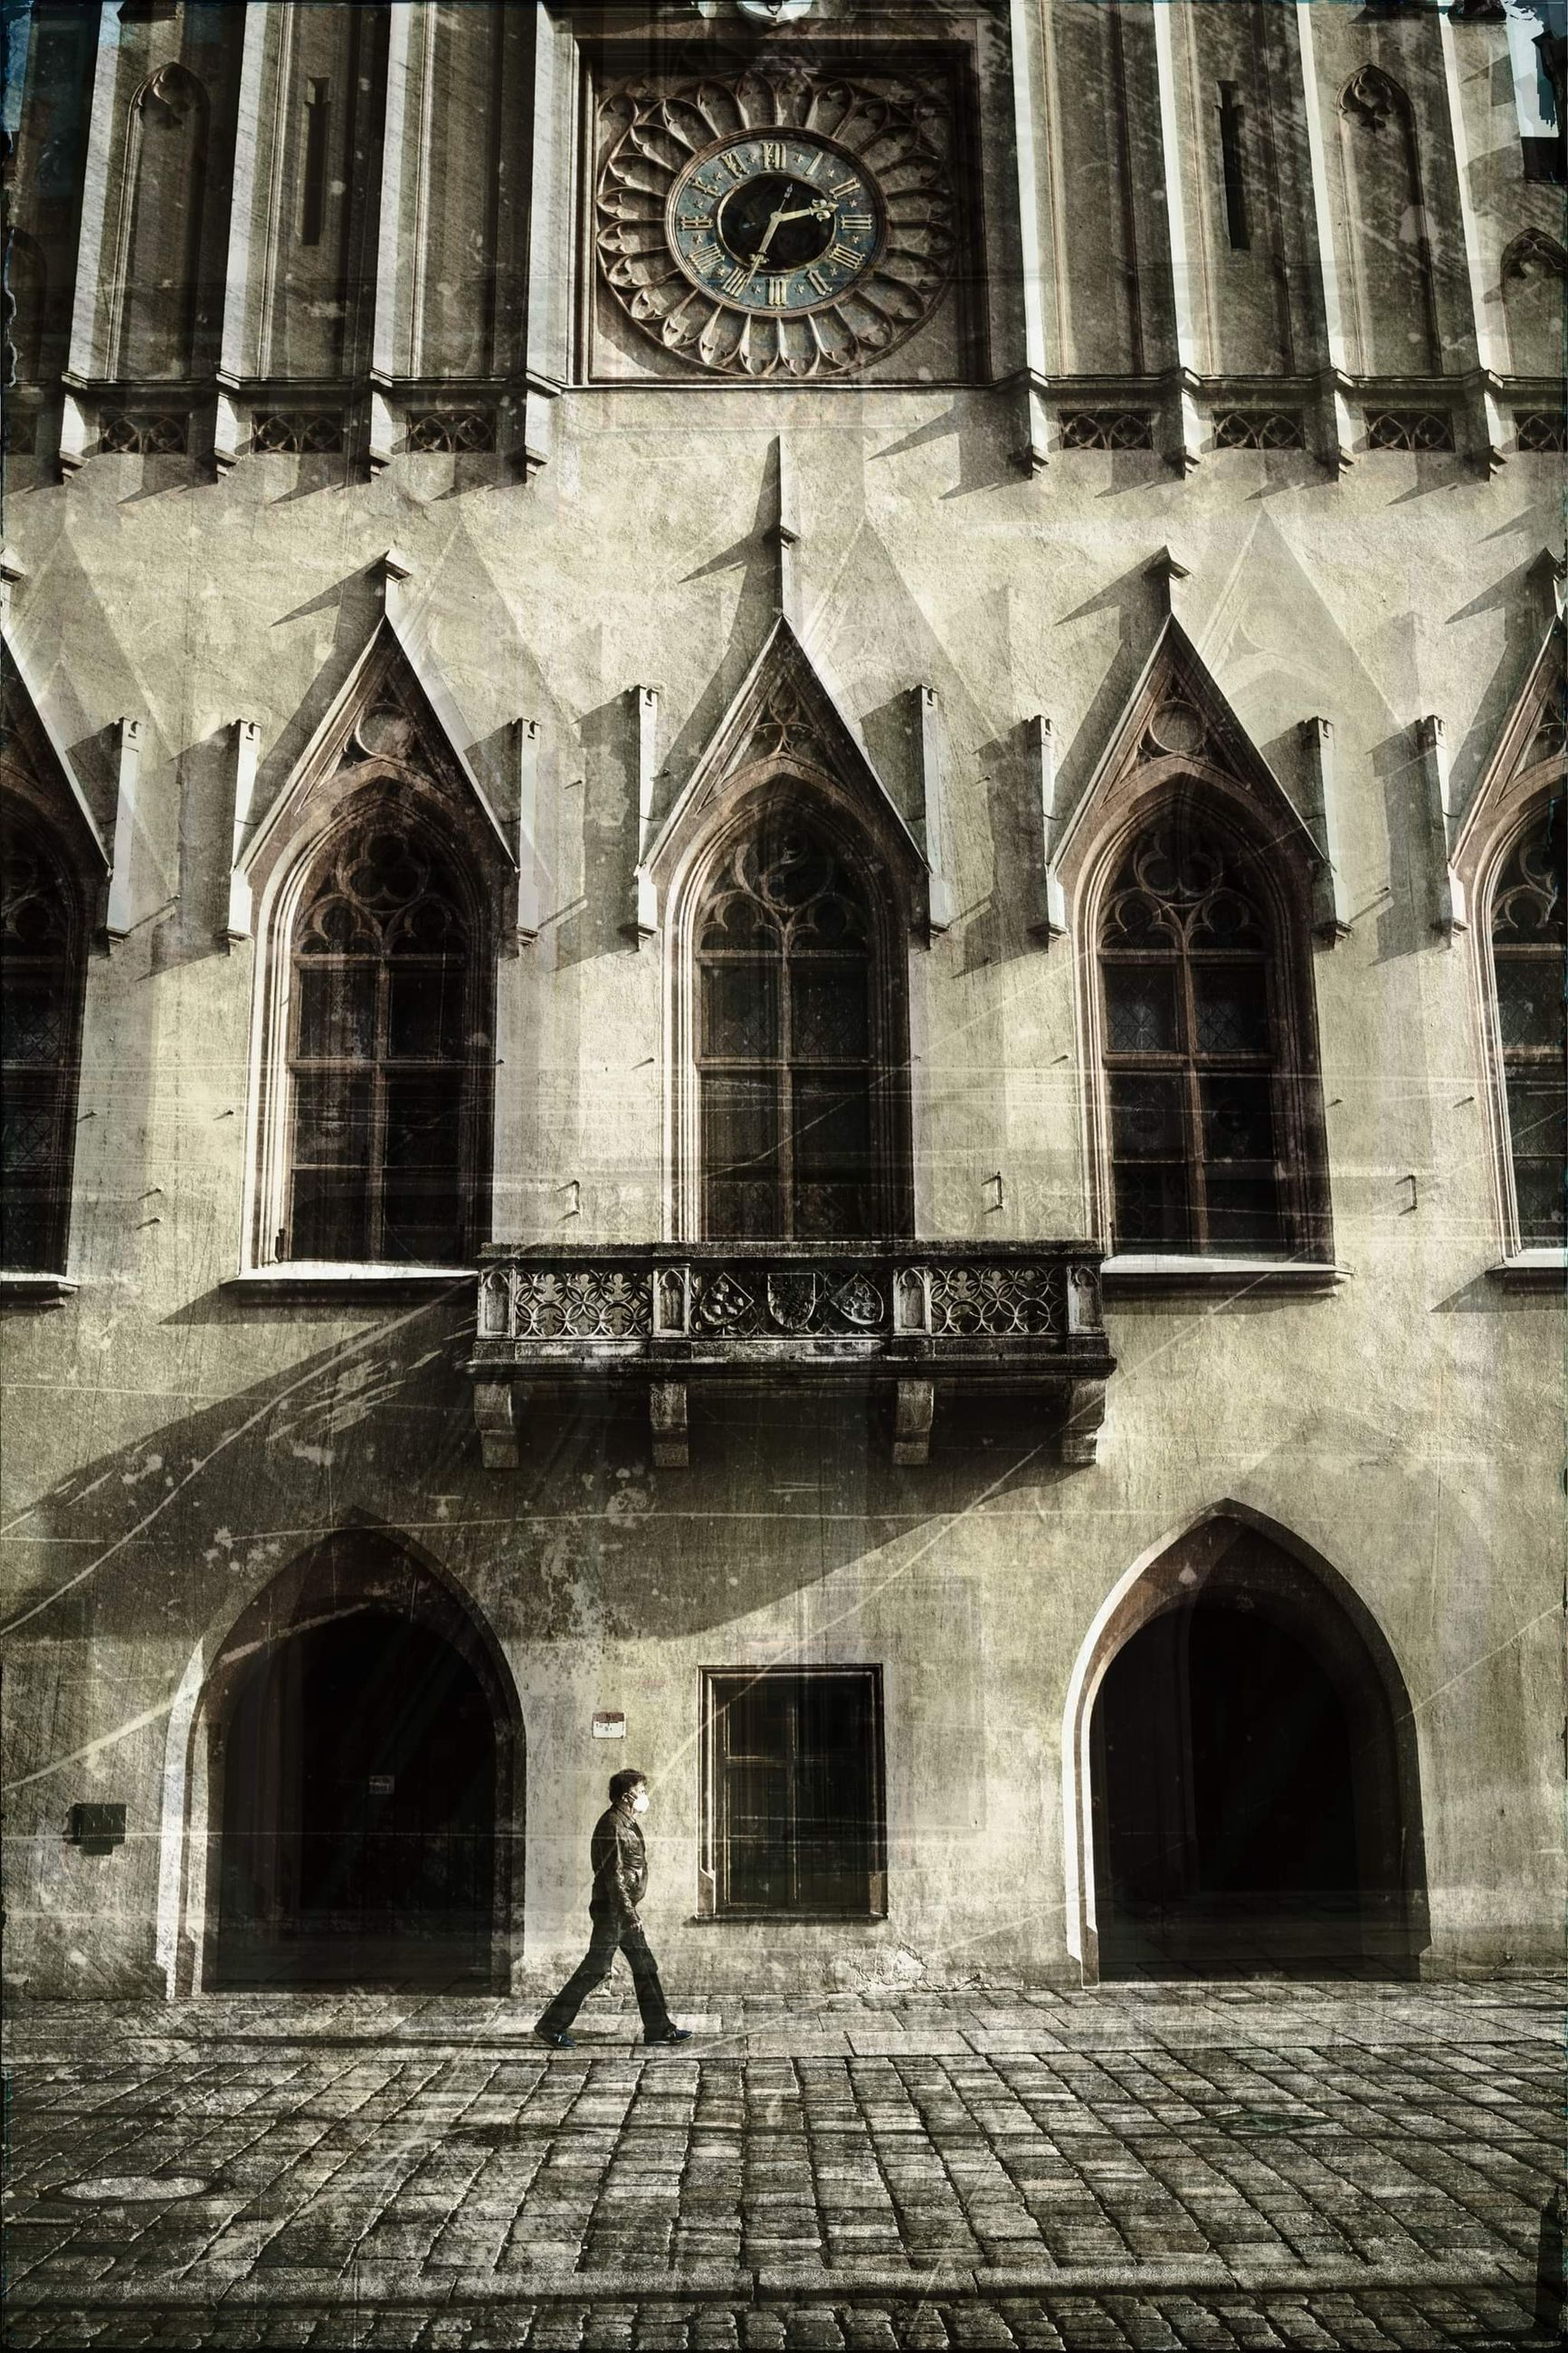 architecture, building exterior, built structure, building, religion, place of worship, arch, belief, history, spirituality, the past, window, city, catholicism, facade, day, travel destinations, ancient history, men, one person, worship, adult, outdoors, old, women, full length